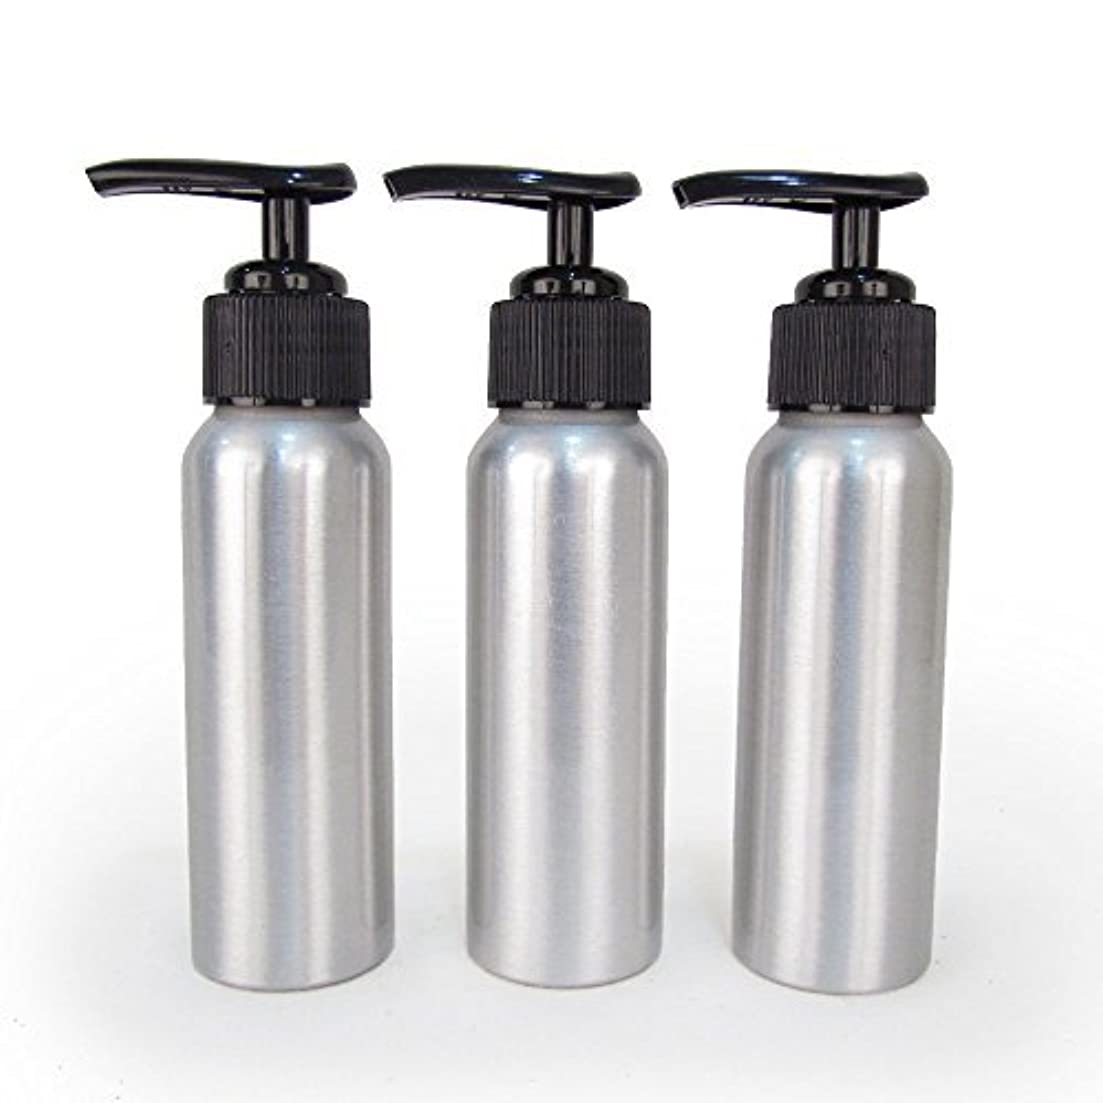 安全な発見最小Set of 3 - Slender Brushed Aluminum 2.7 oz Pump Bottle for Essential Oil Products by Rivertree Life [並行輸入品]